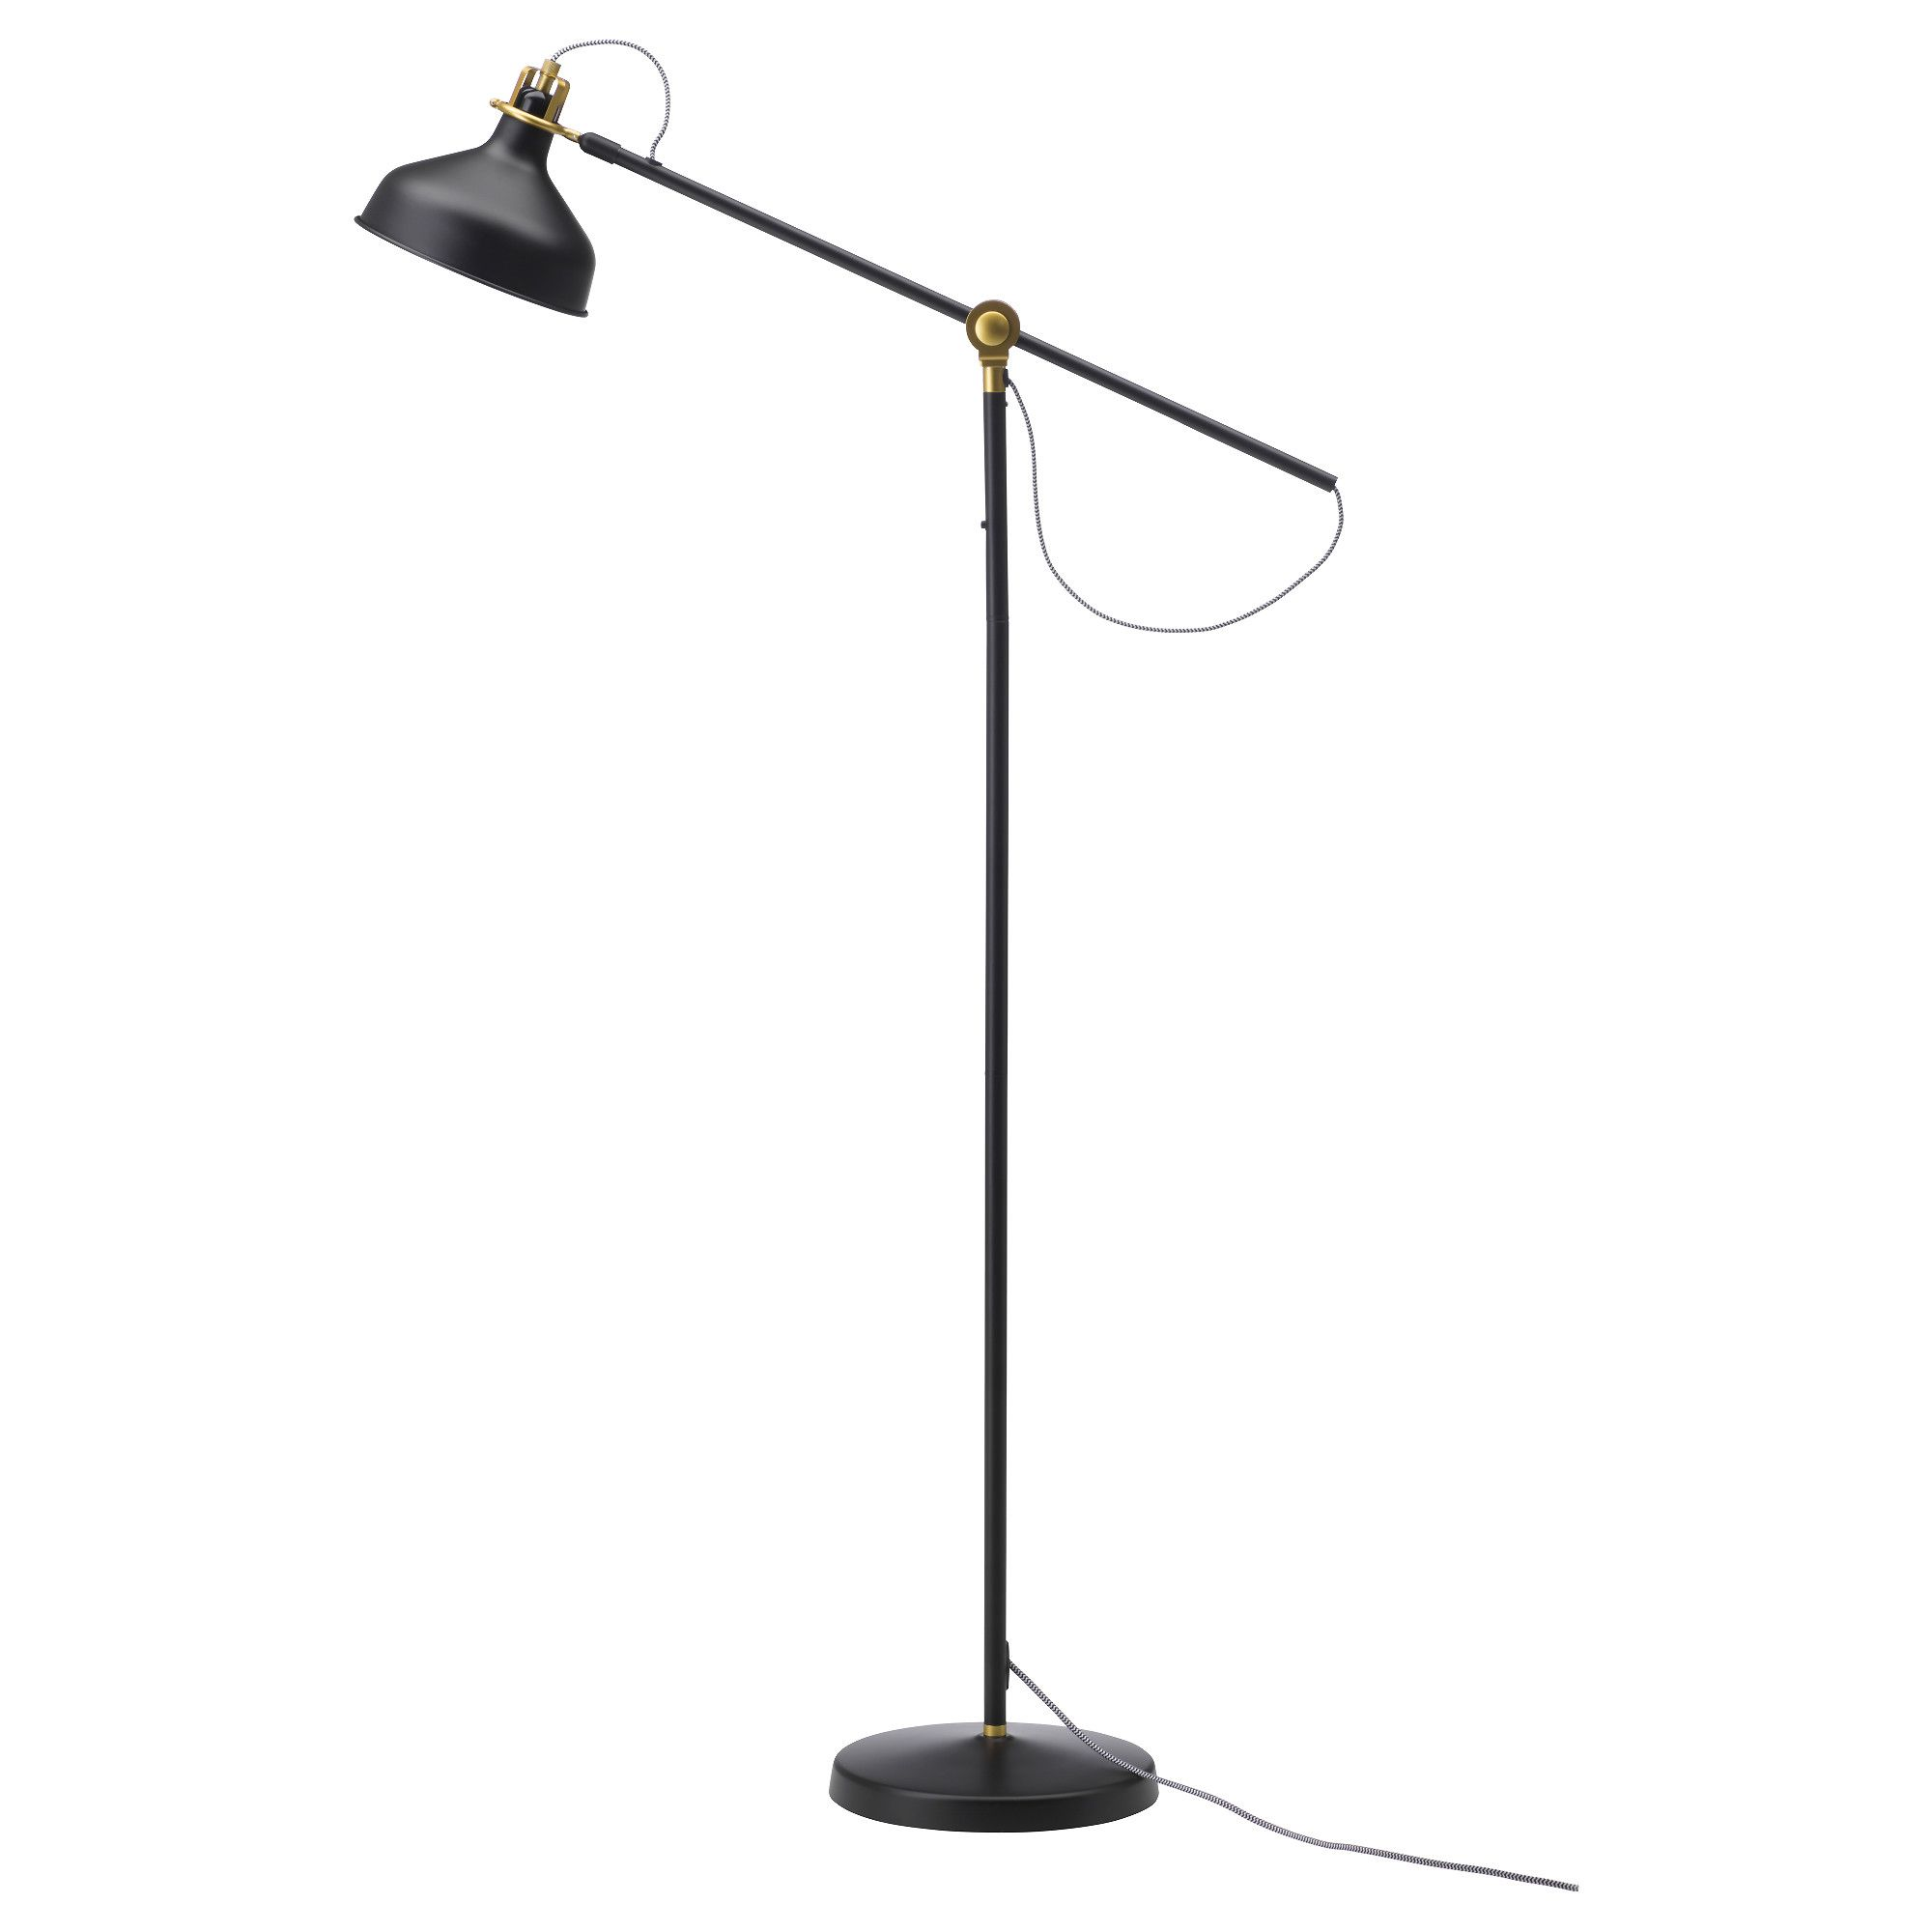 Ikea Reading Lamp Furniture And Home Furnishings Black Standing Reading Light